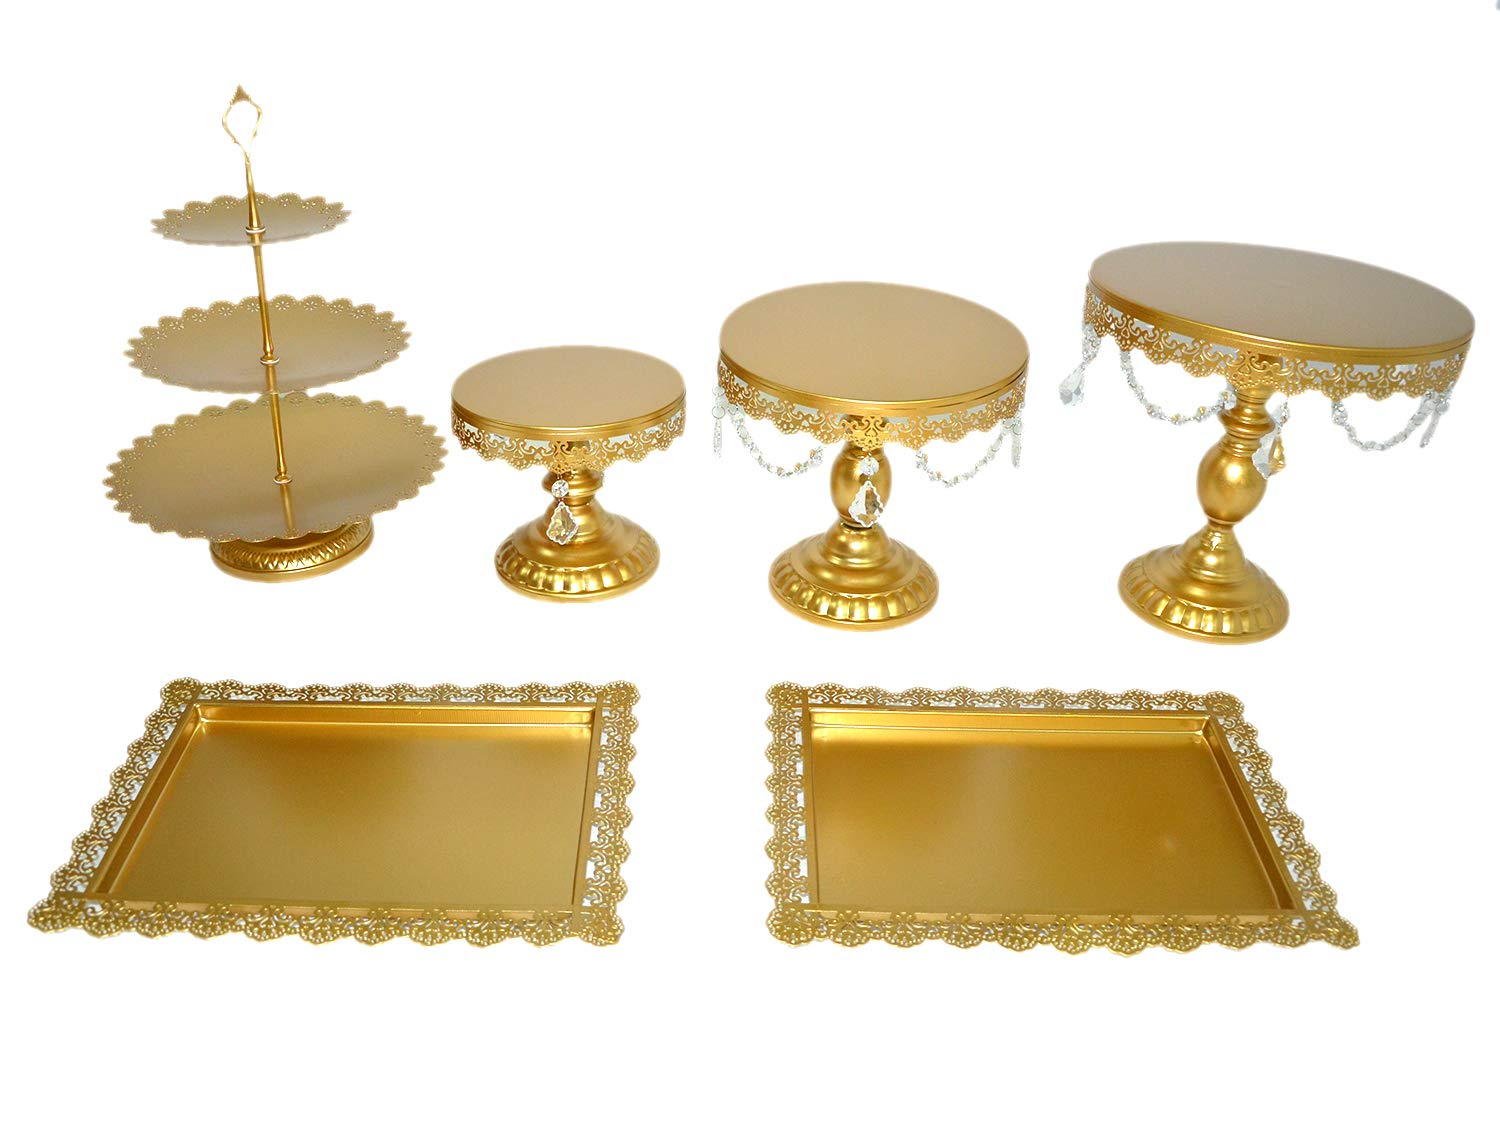 6PCS / Set gold mirror surface Wedding Dessert Tray Cake Stand Cupcake Pan cake display table decoration Party Supply (gold)